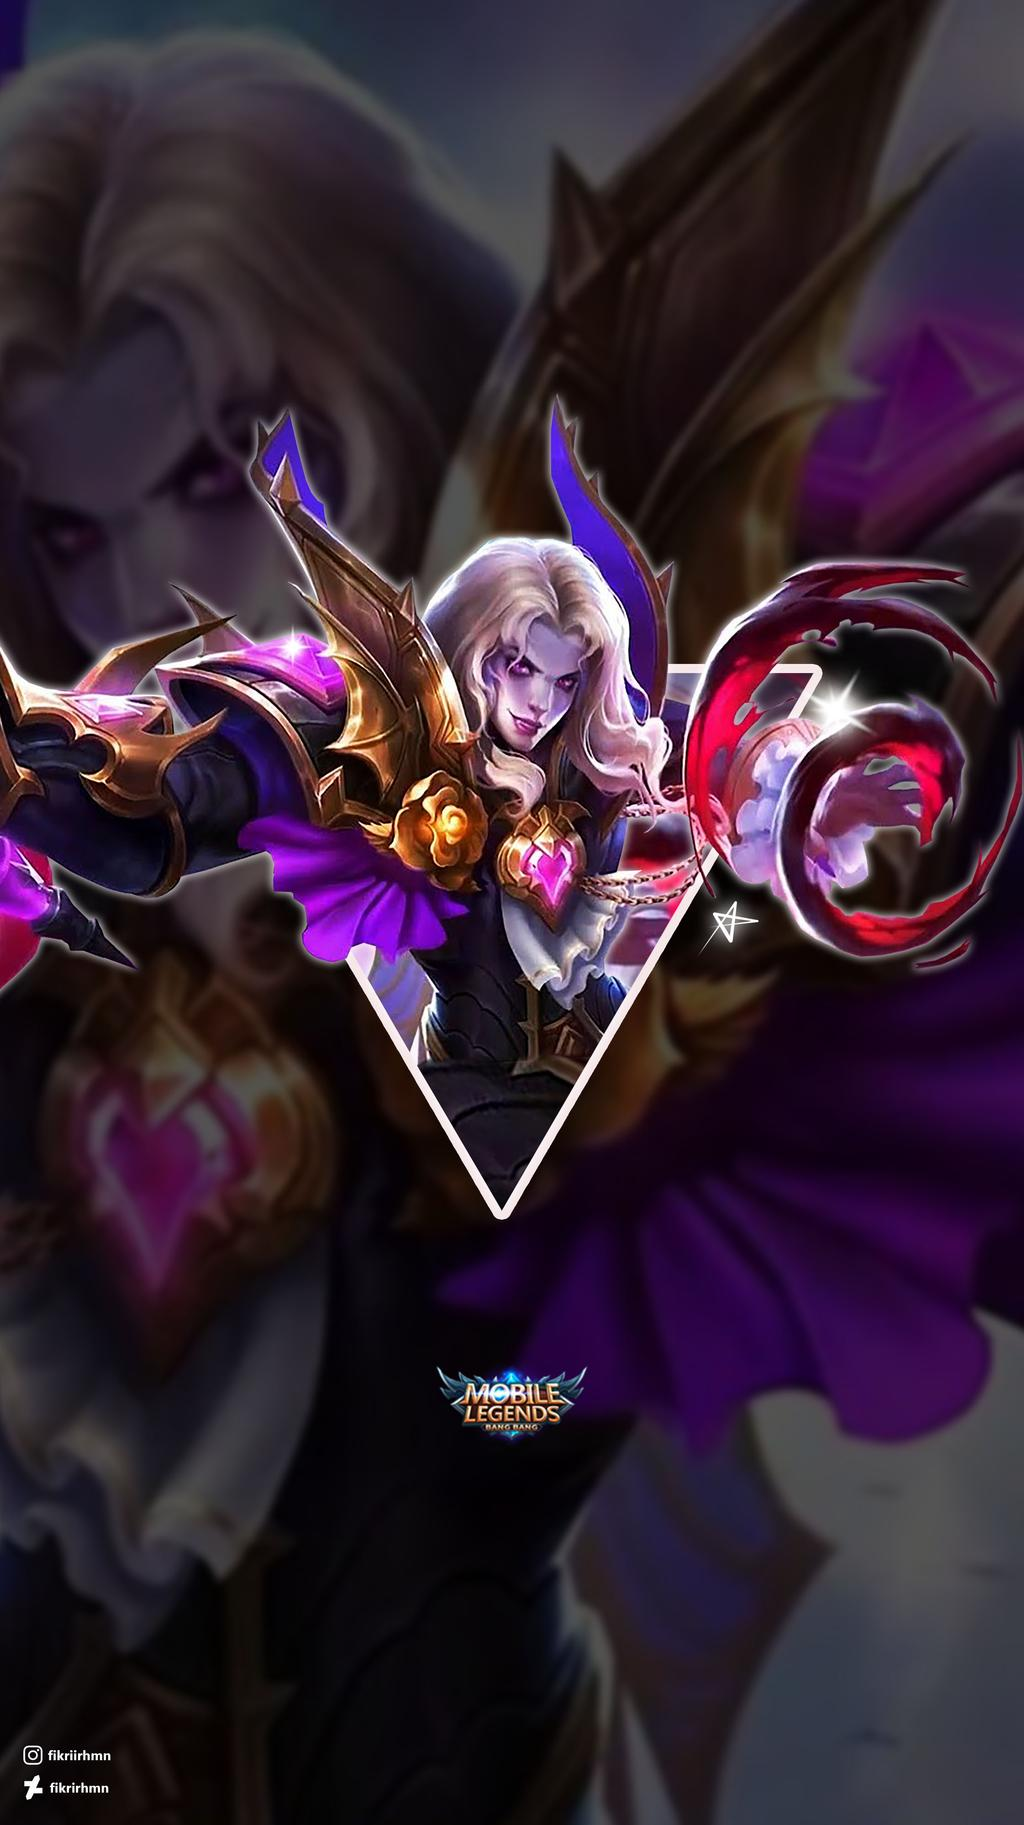 Mobile Legends Lancelot Wallpapers Posted By Ryan Peltier